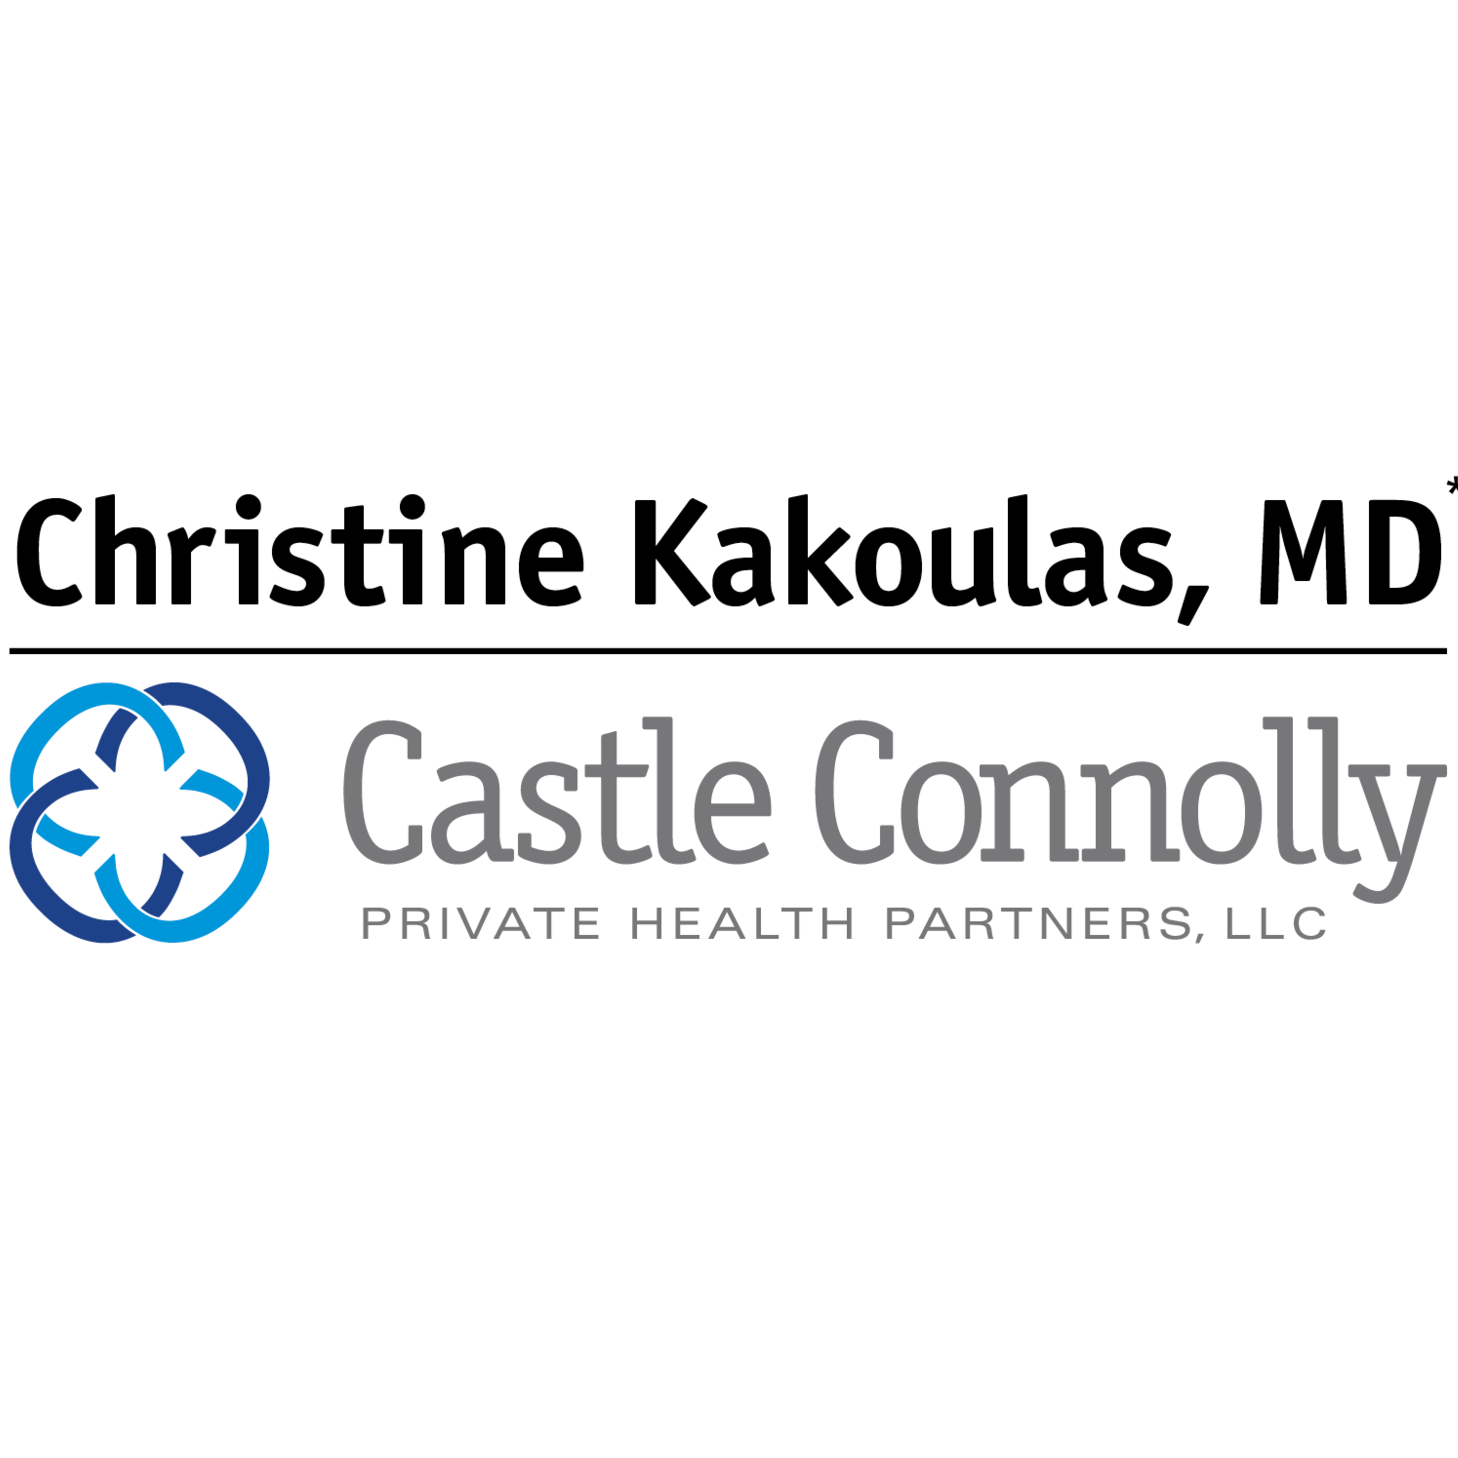 Christine Kakoulas, MD - New York, NY - General or Family Practice Physicians